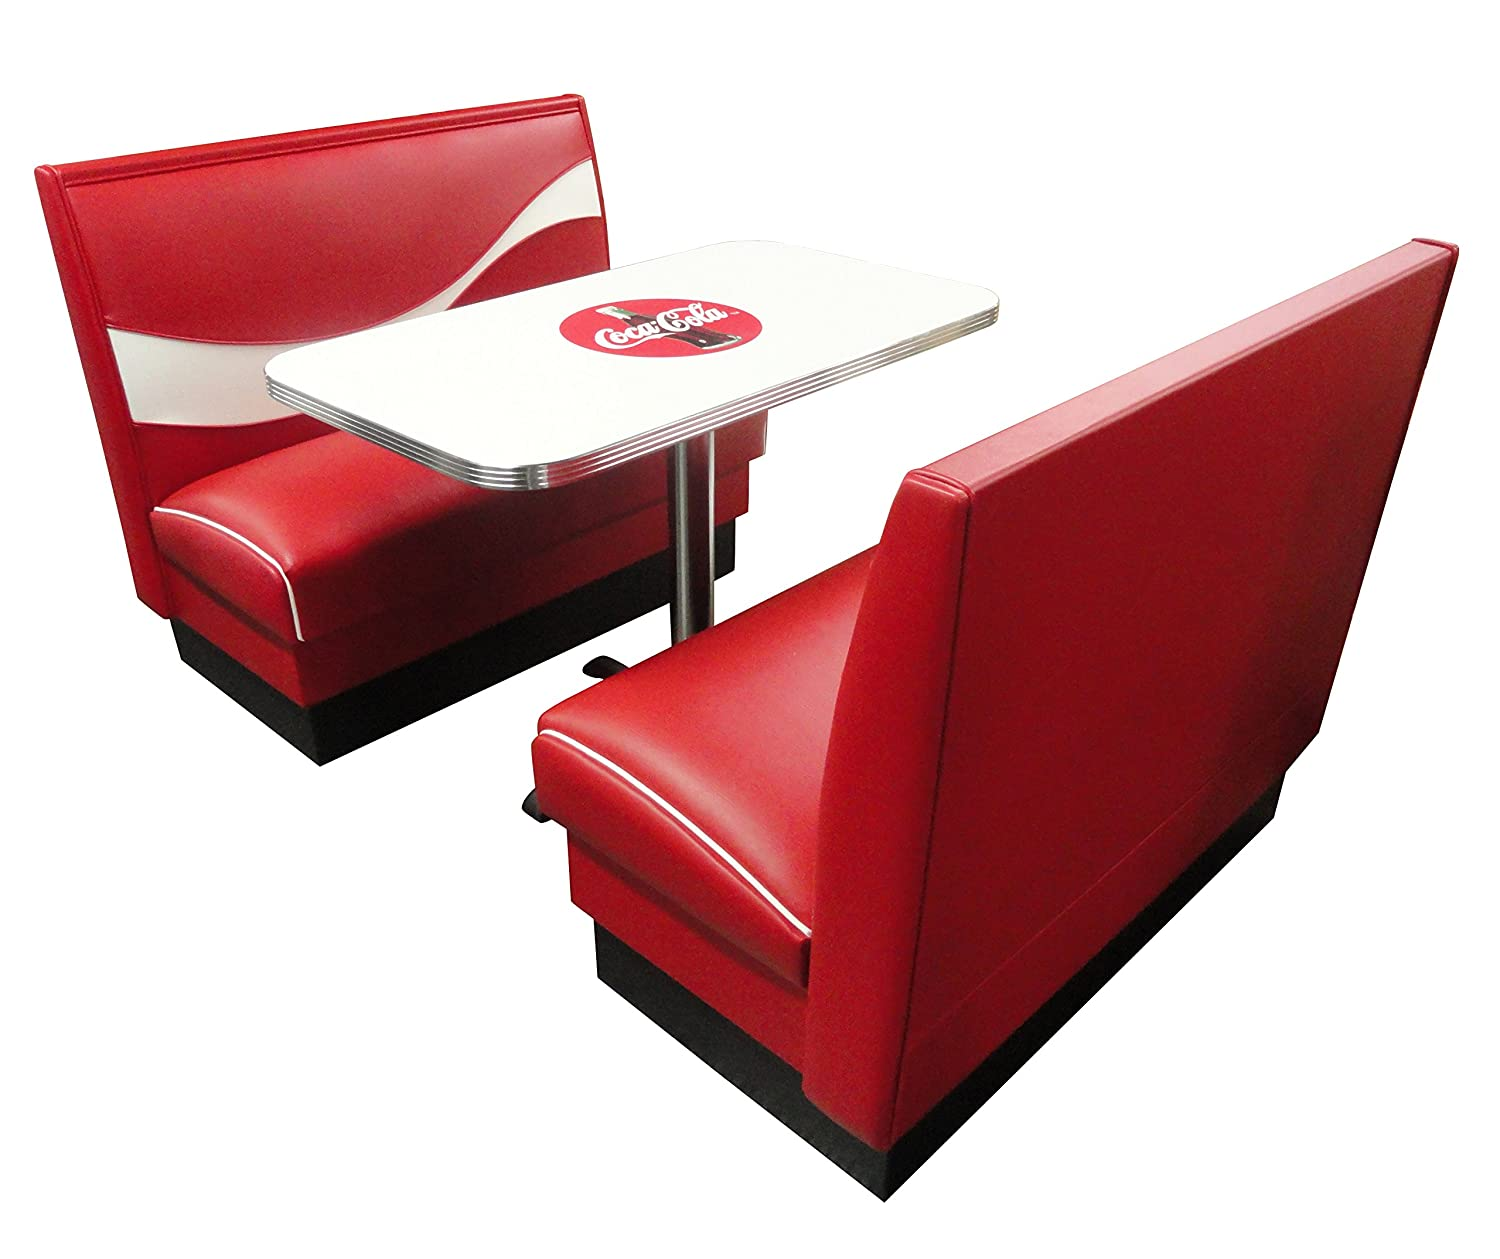 "Vitro Seating Products CB-II Coke Dinette Furniture Set with 2 Dynamic Booths and 24"" x 42"" Table, Red and White (Pack of 3)"